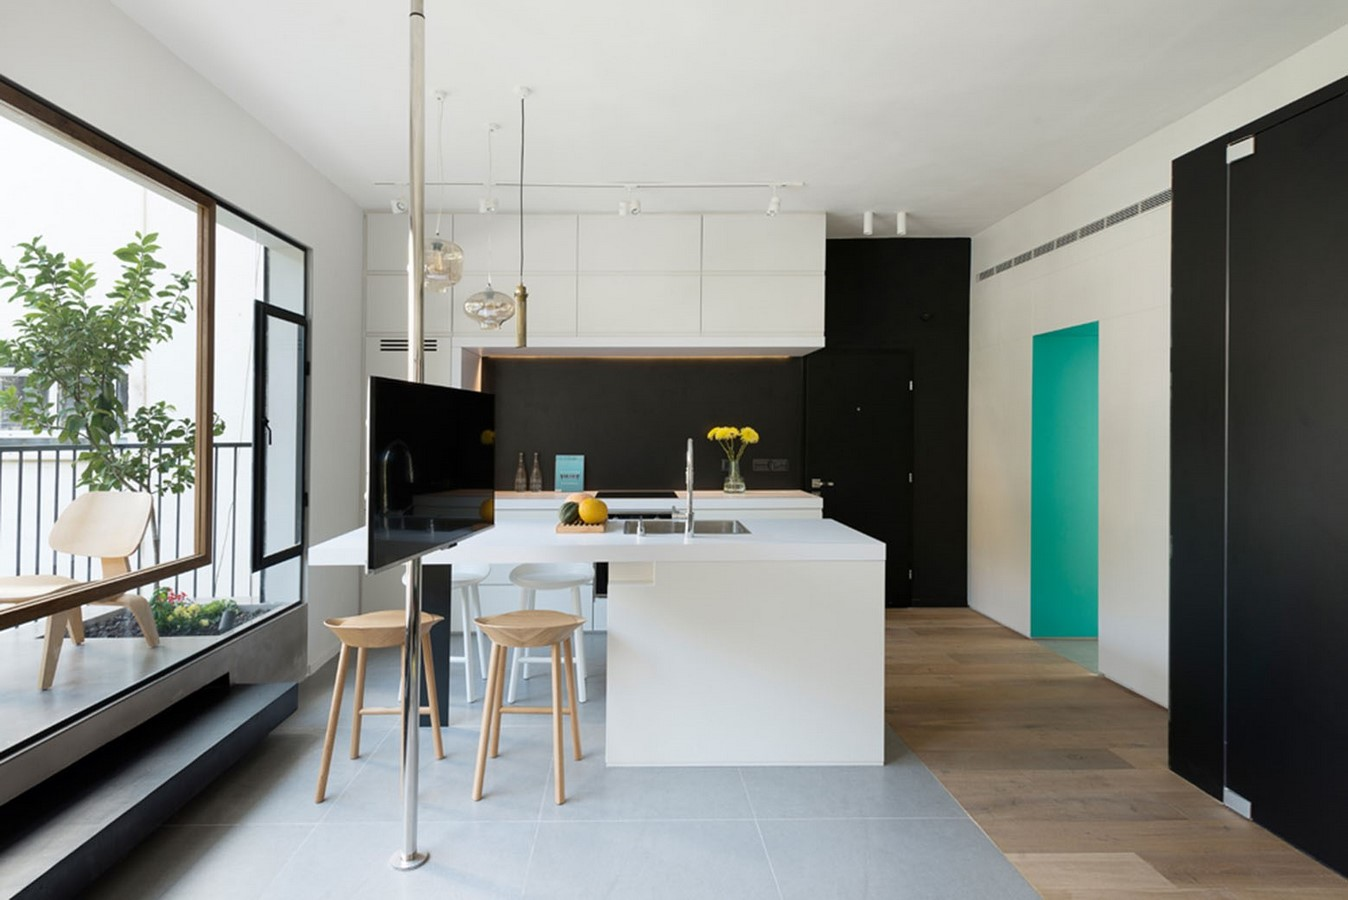 Can luxury fit into a 600sq.ft apartment - Sheet11